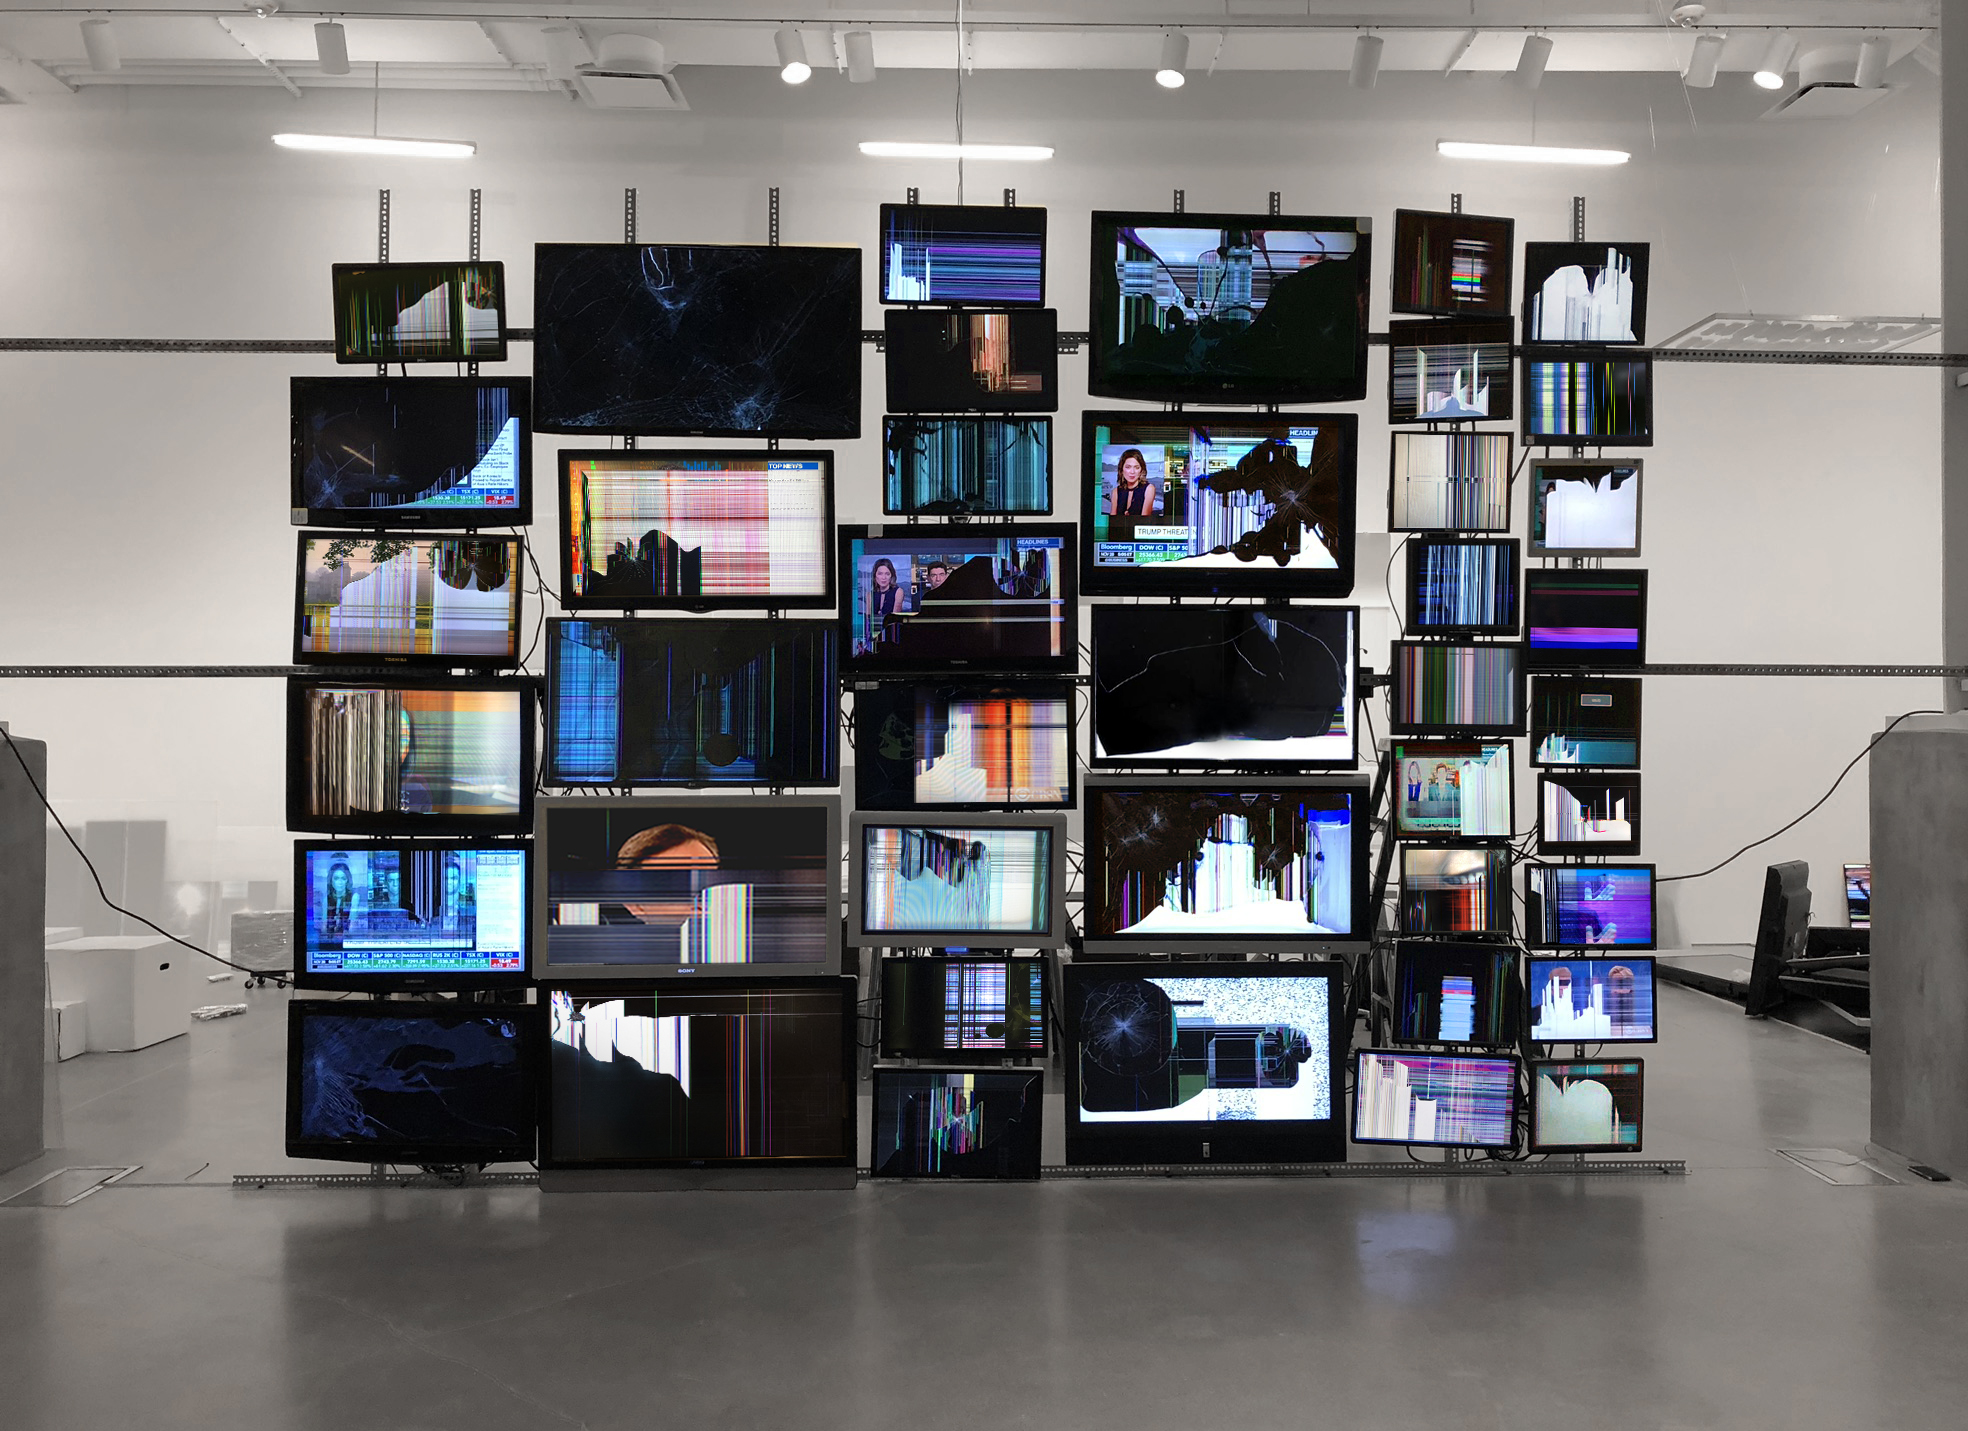 Rows of glitching tv screens stacked on top of each other.